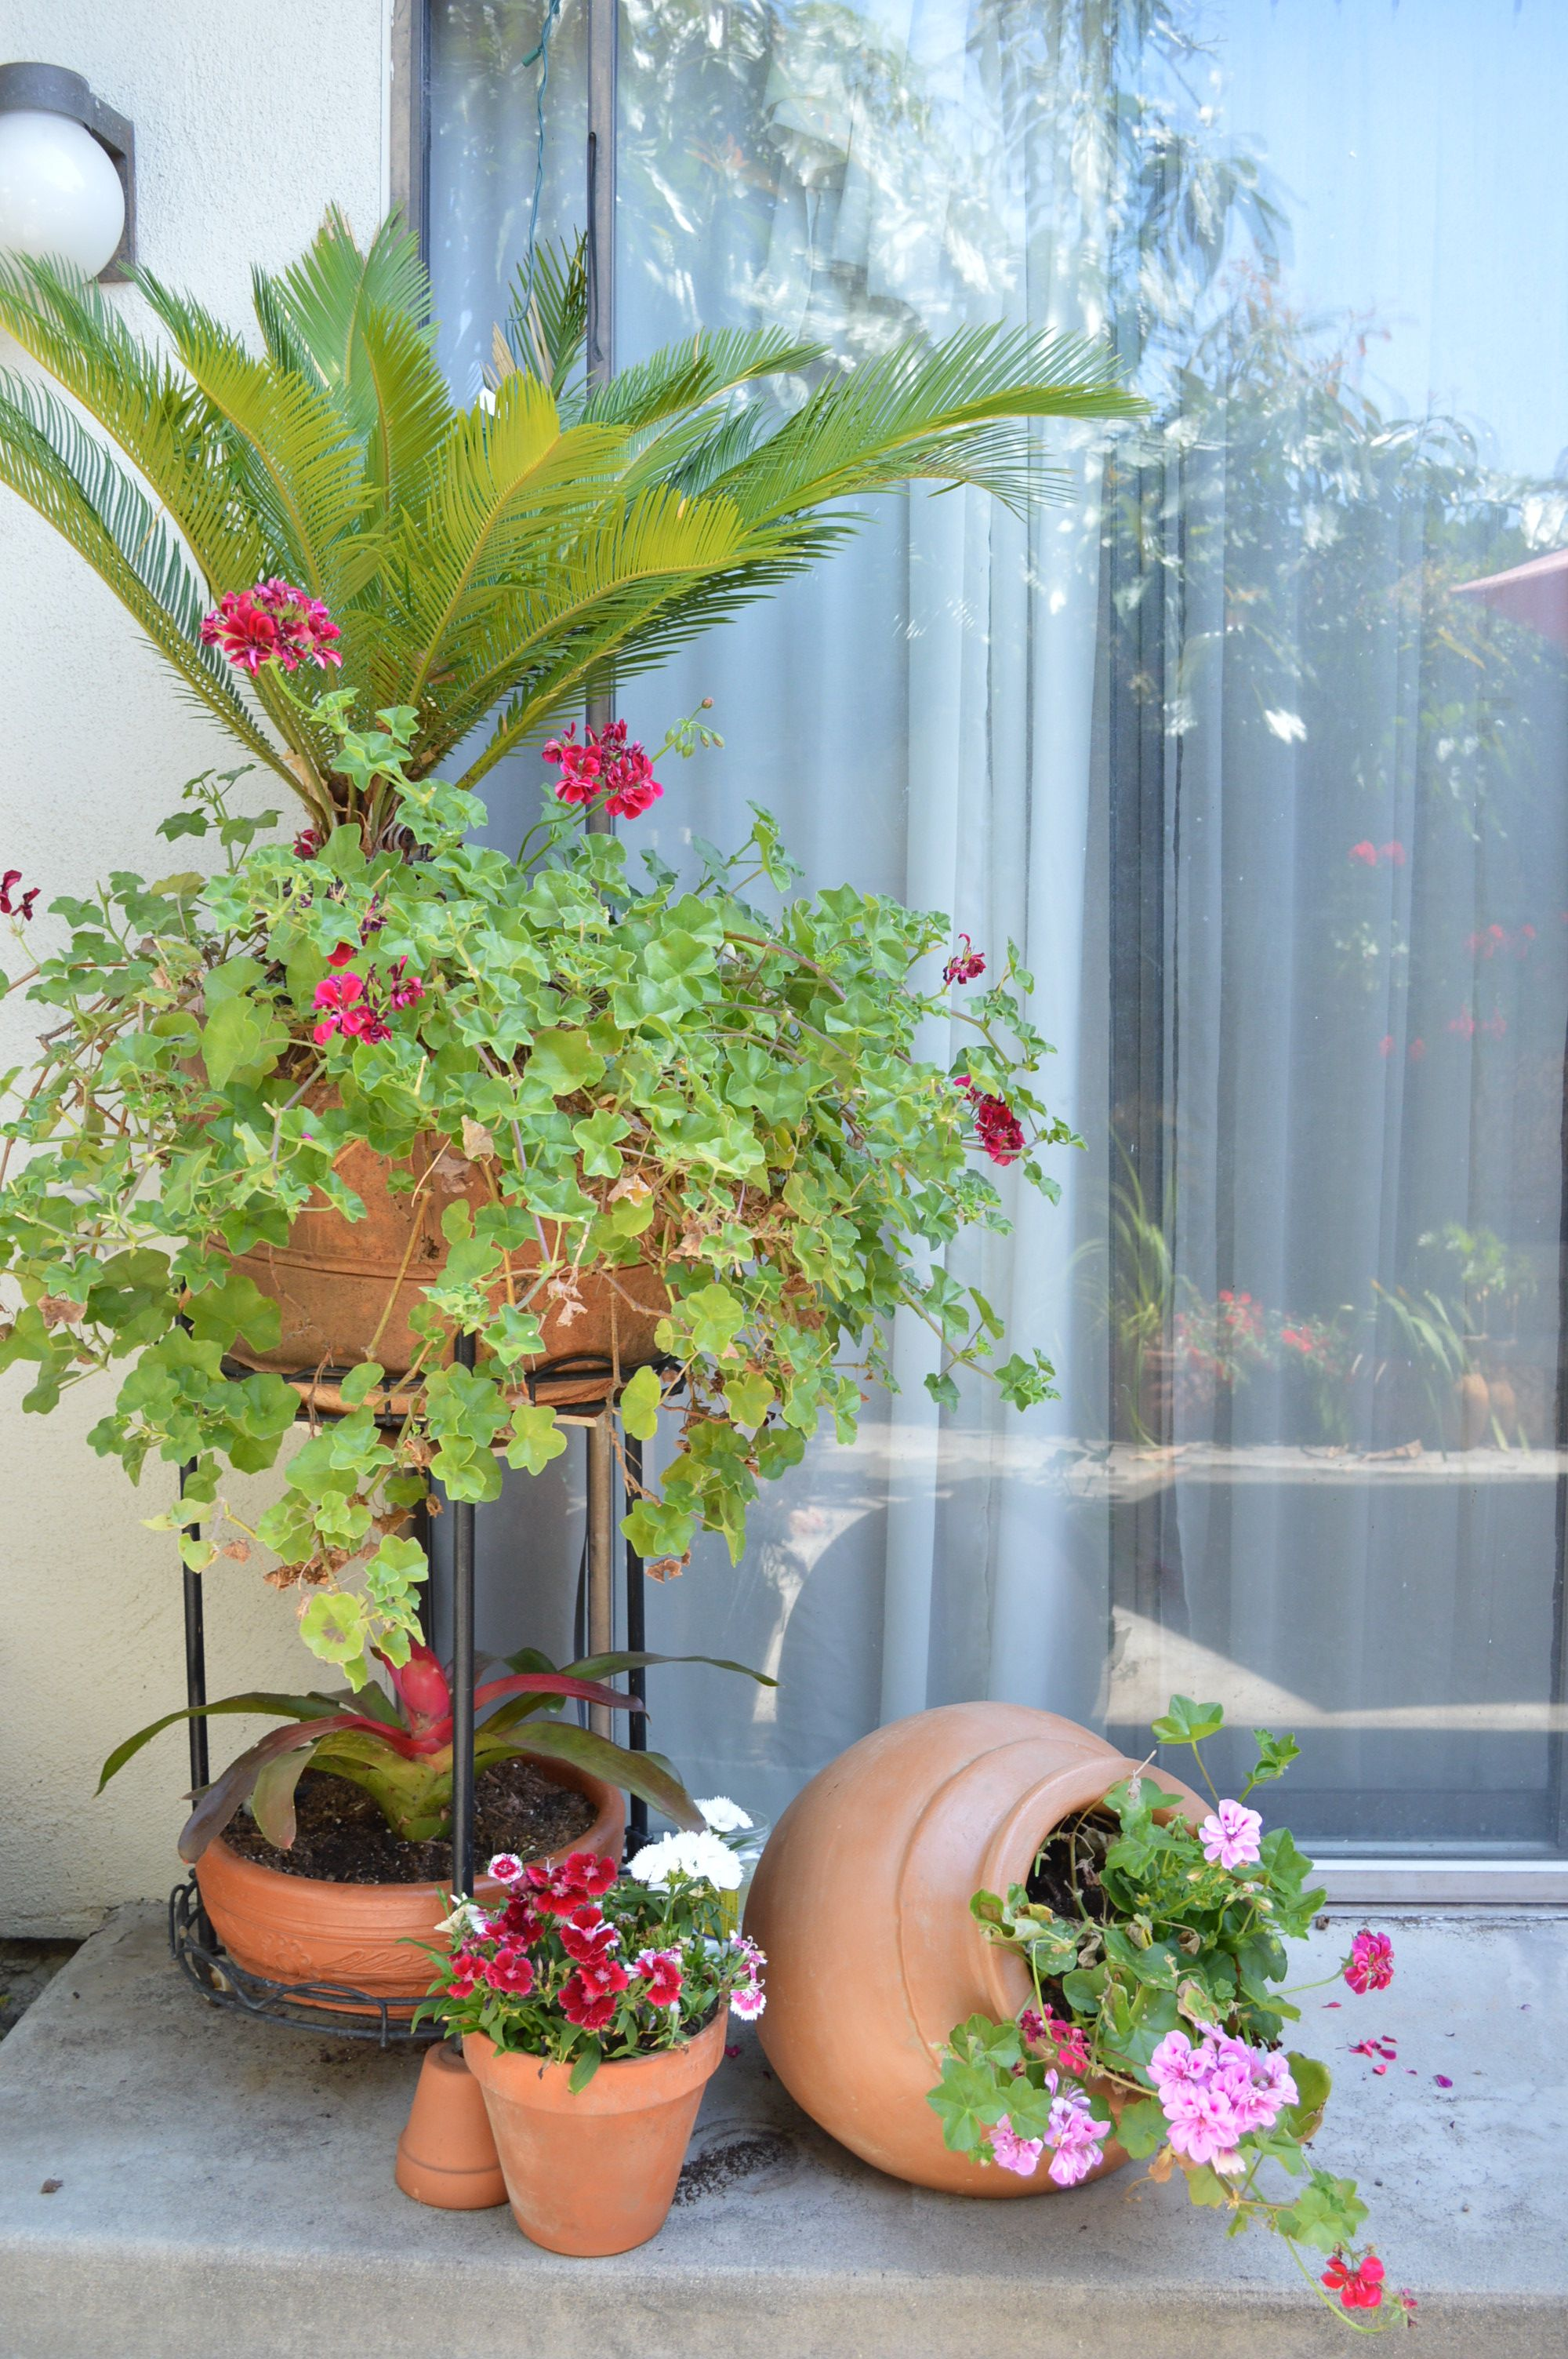 Beautiful Germanium ivy   Spanish/Mexican Garden by me   Pinterest ...